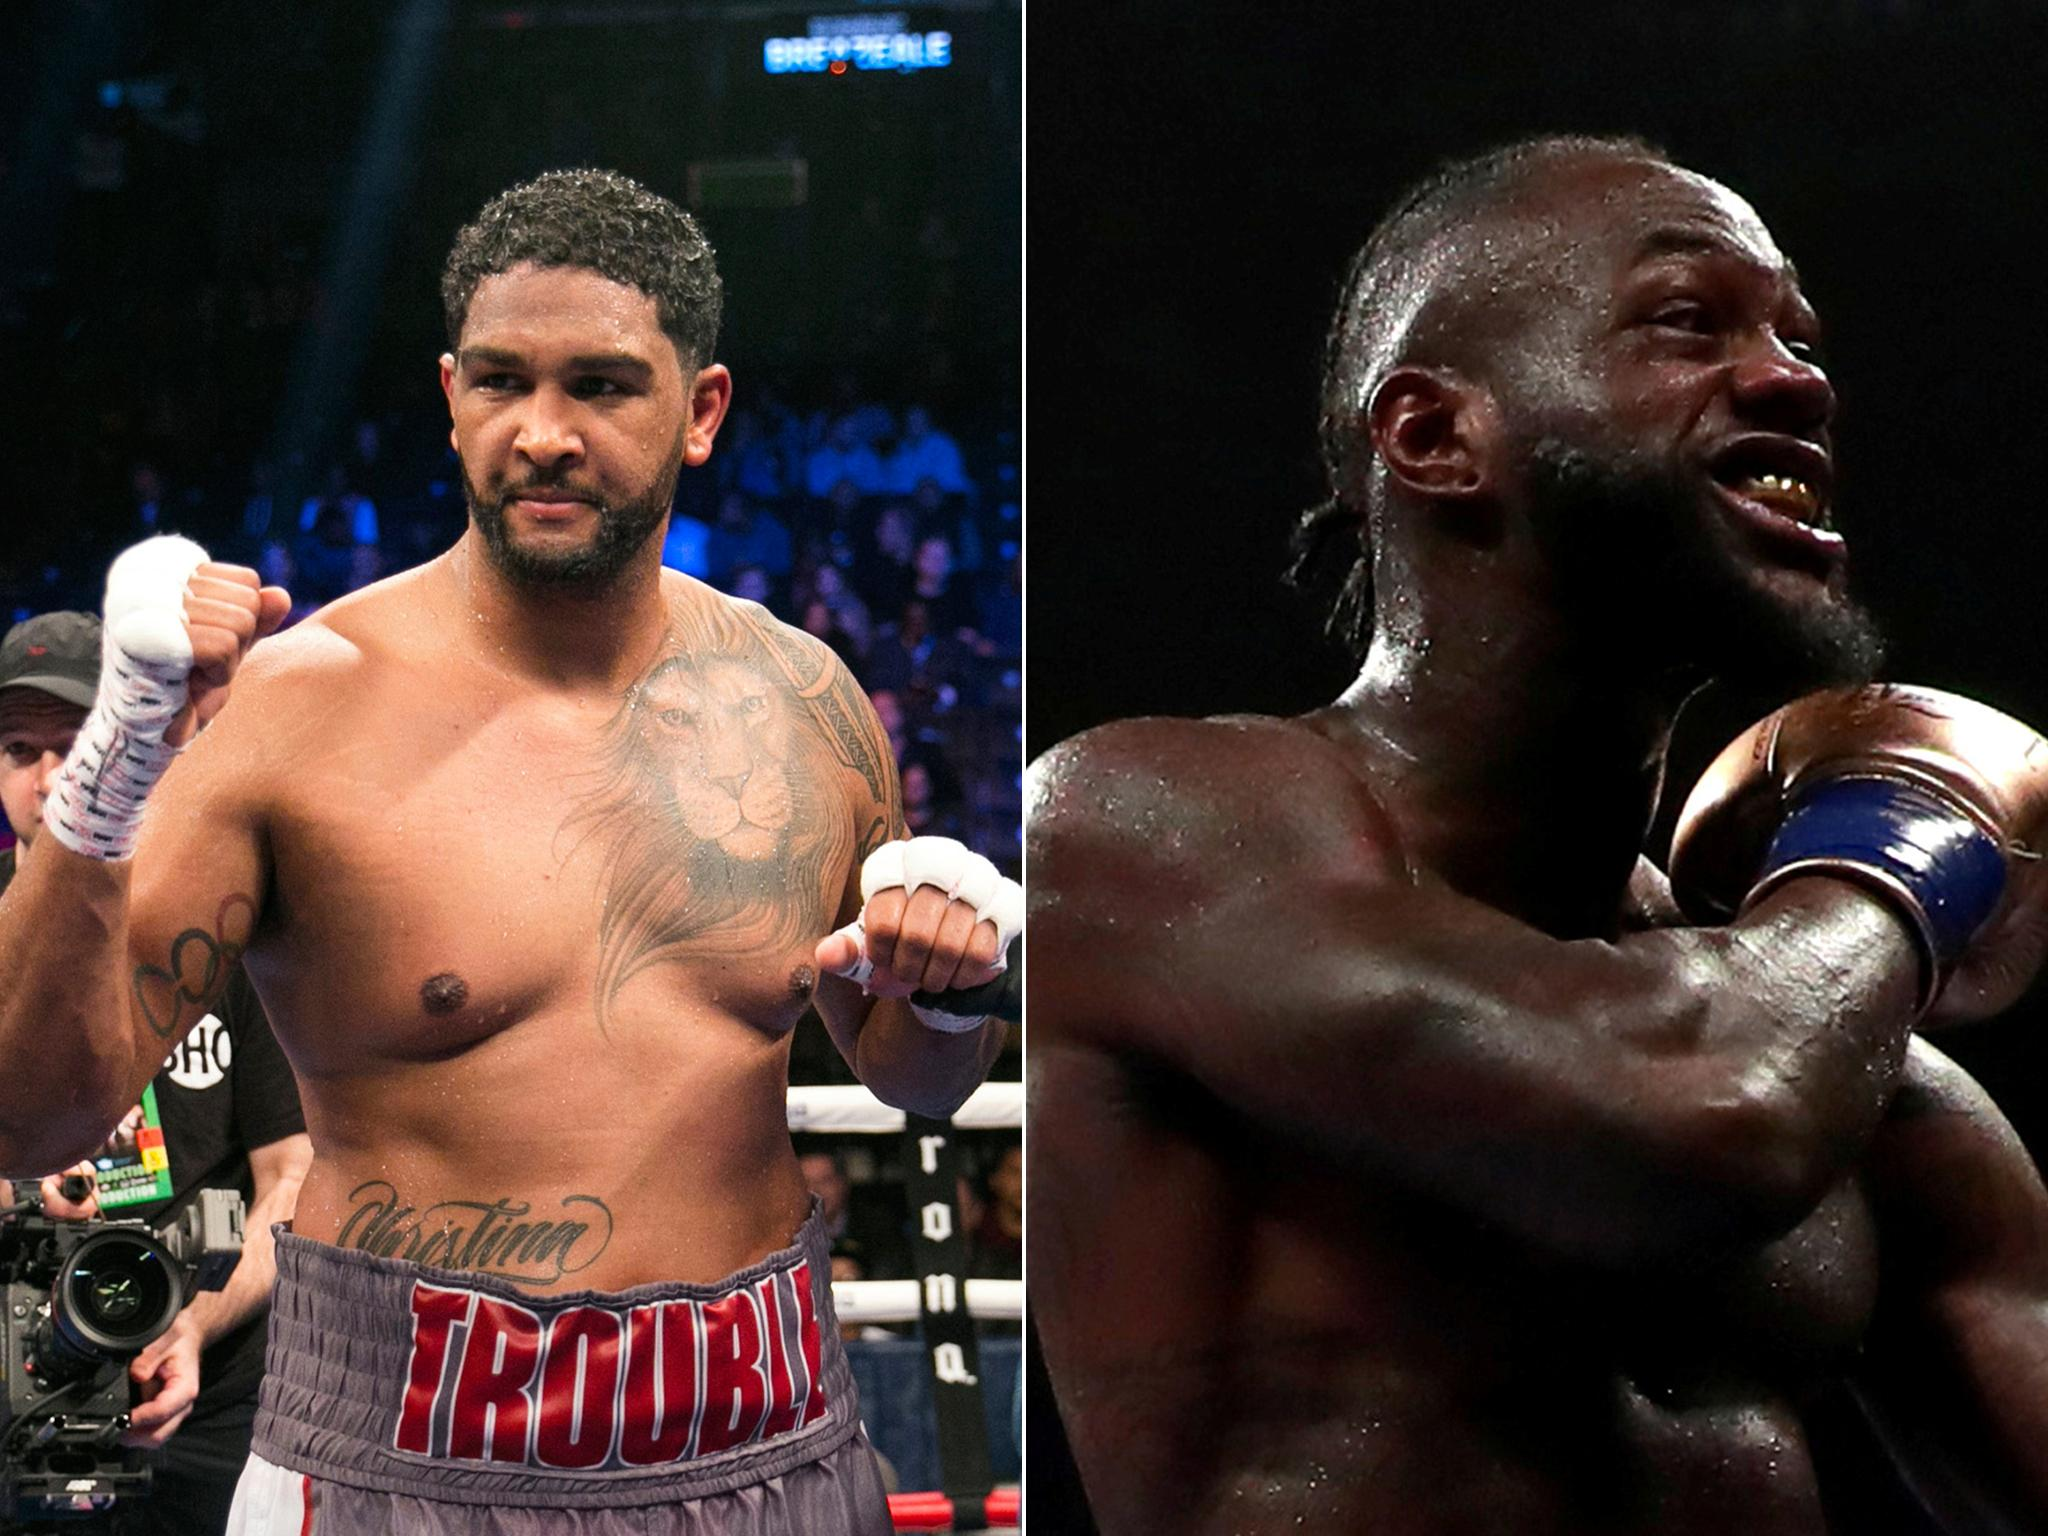 Deontay Wilder vs Dominic Breazeale: Fight date, time, buy tickets, how to watch, undercard, odds and latest info